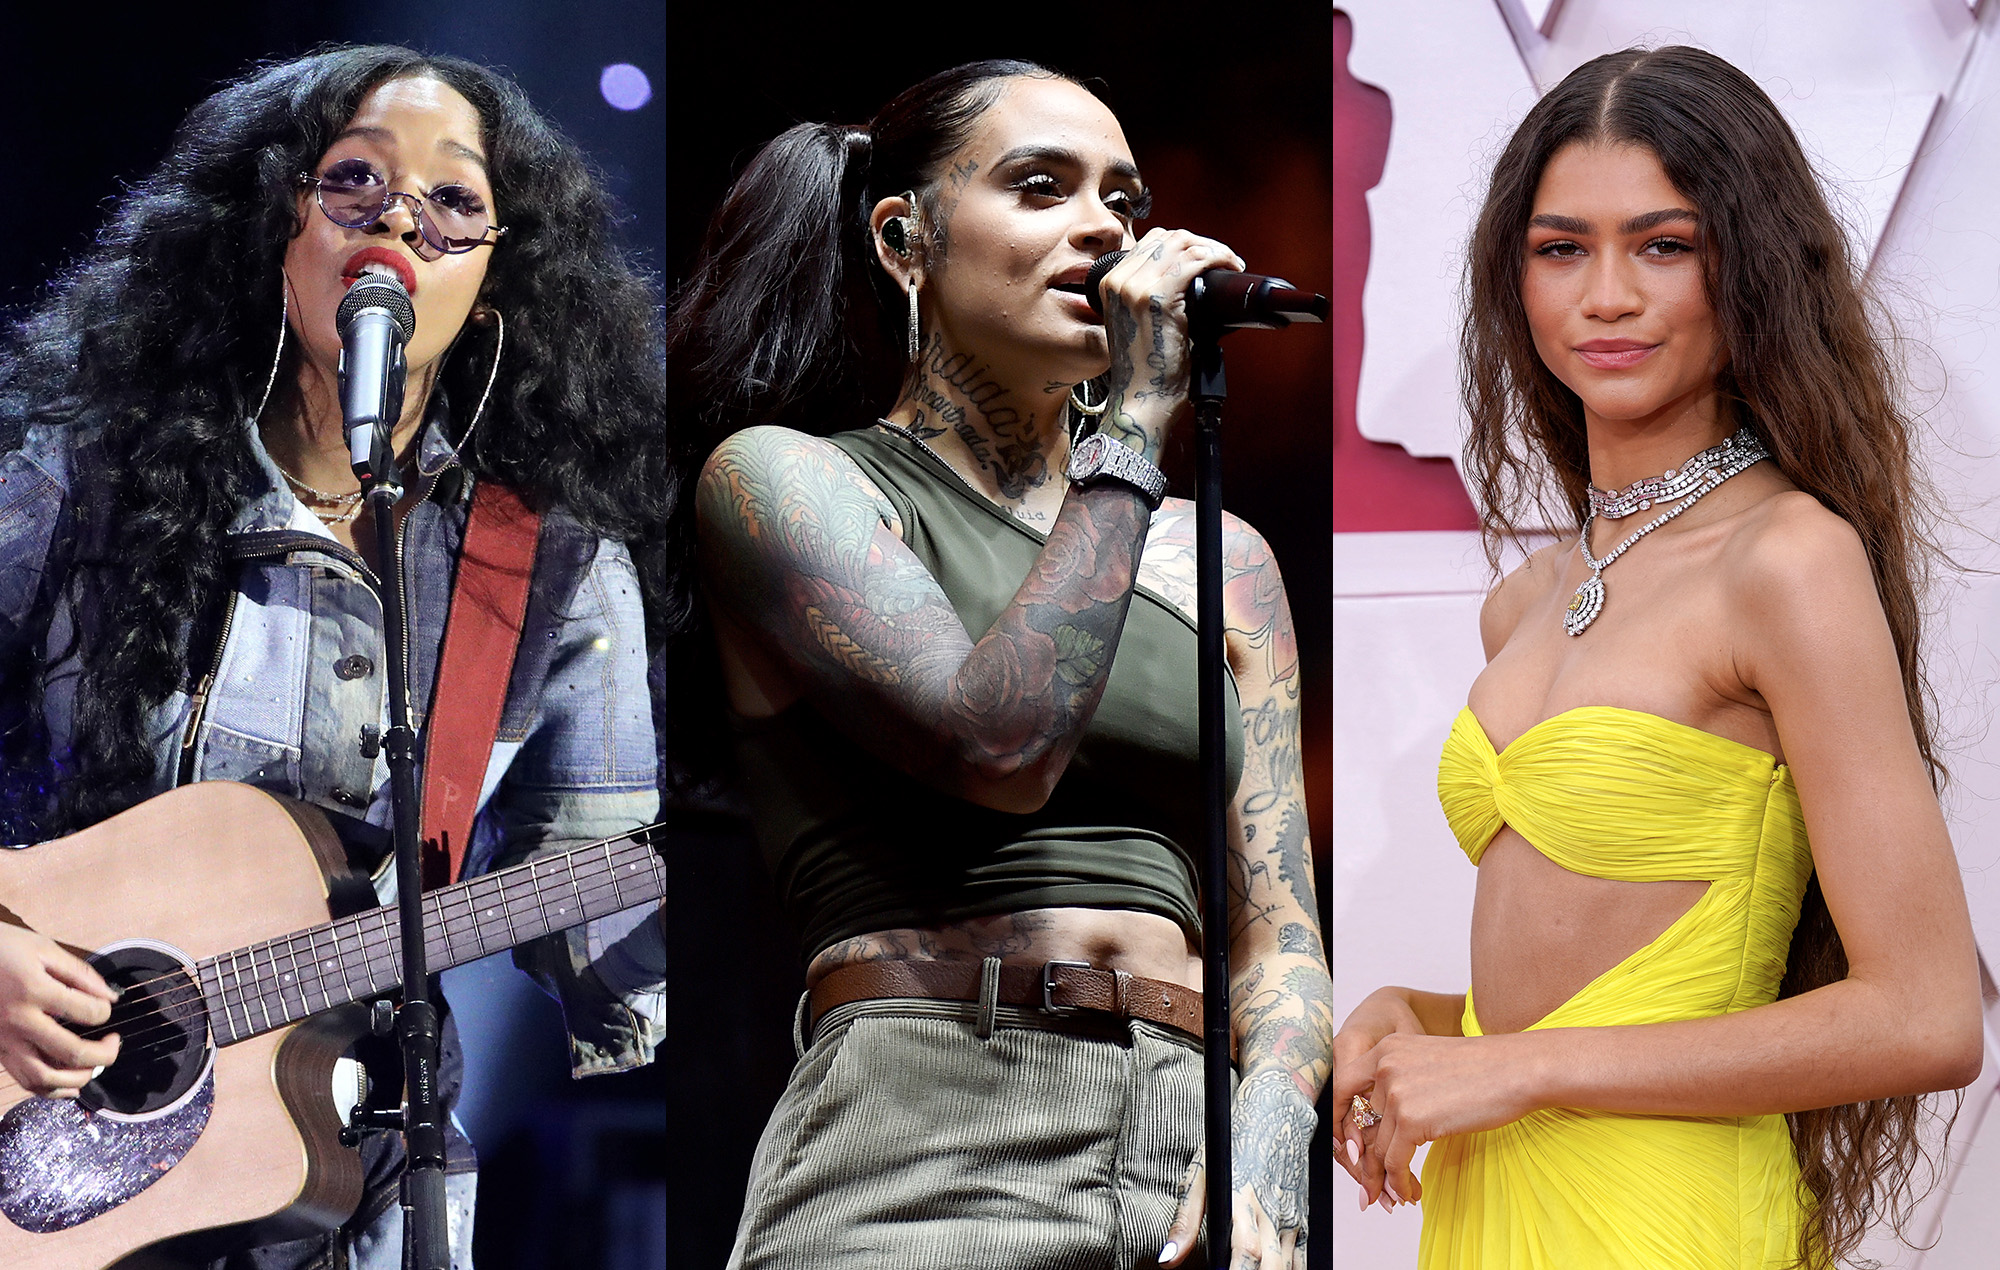 H.E.R. says she was nearly in a band with Kehlani and Zendaya